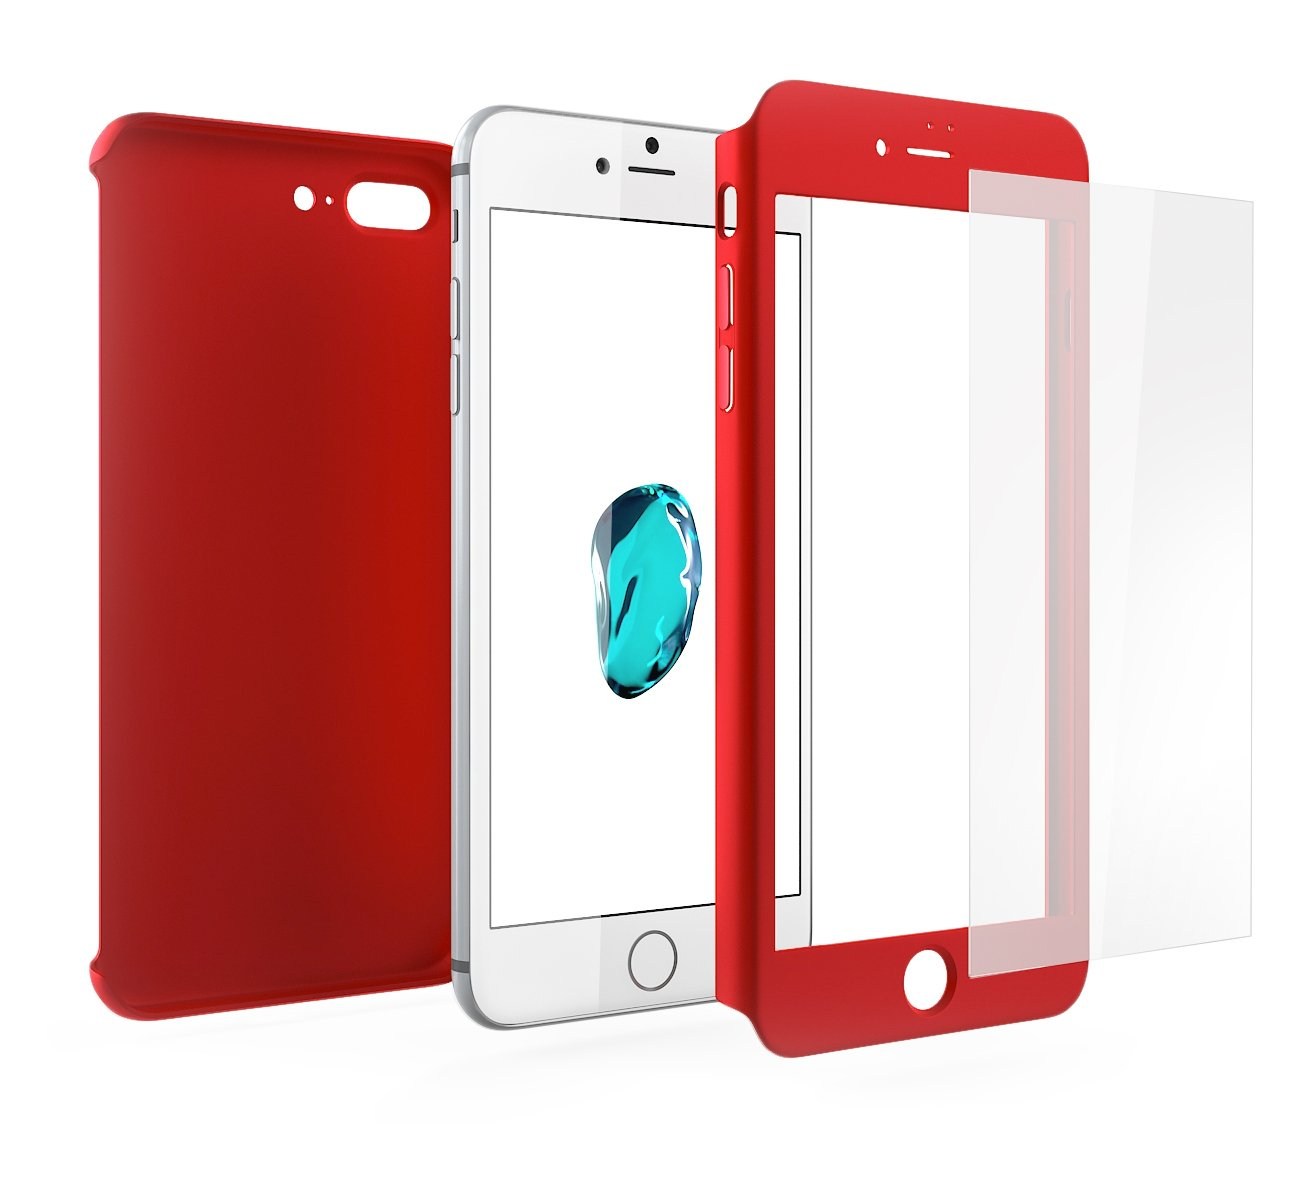 carcasa iphone 7 roja